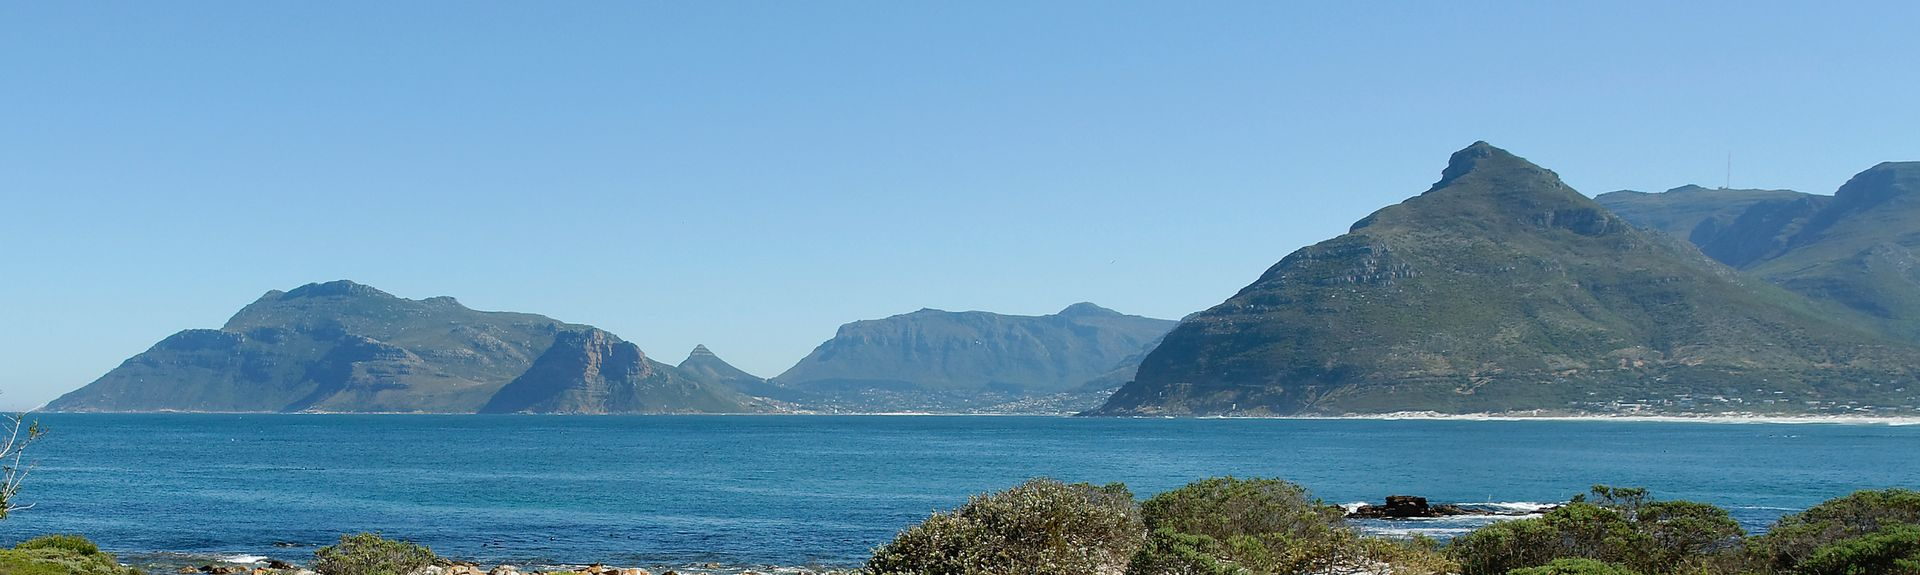 Kommetjie, Le Cap, Cap-Occidental, Afrique du Sud